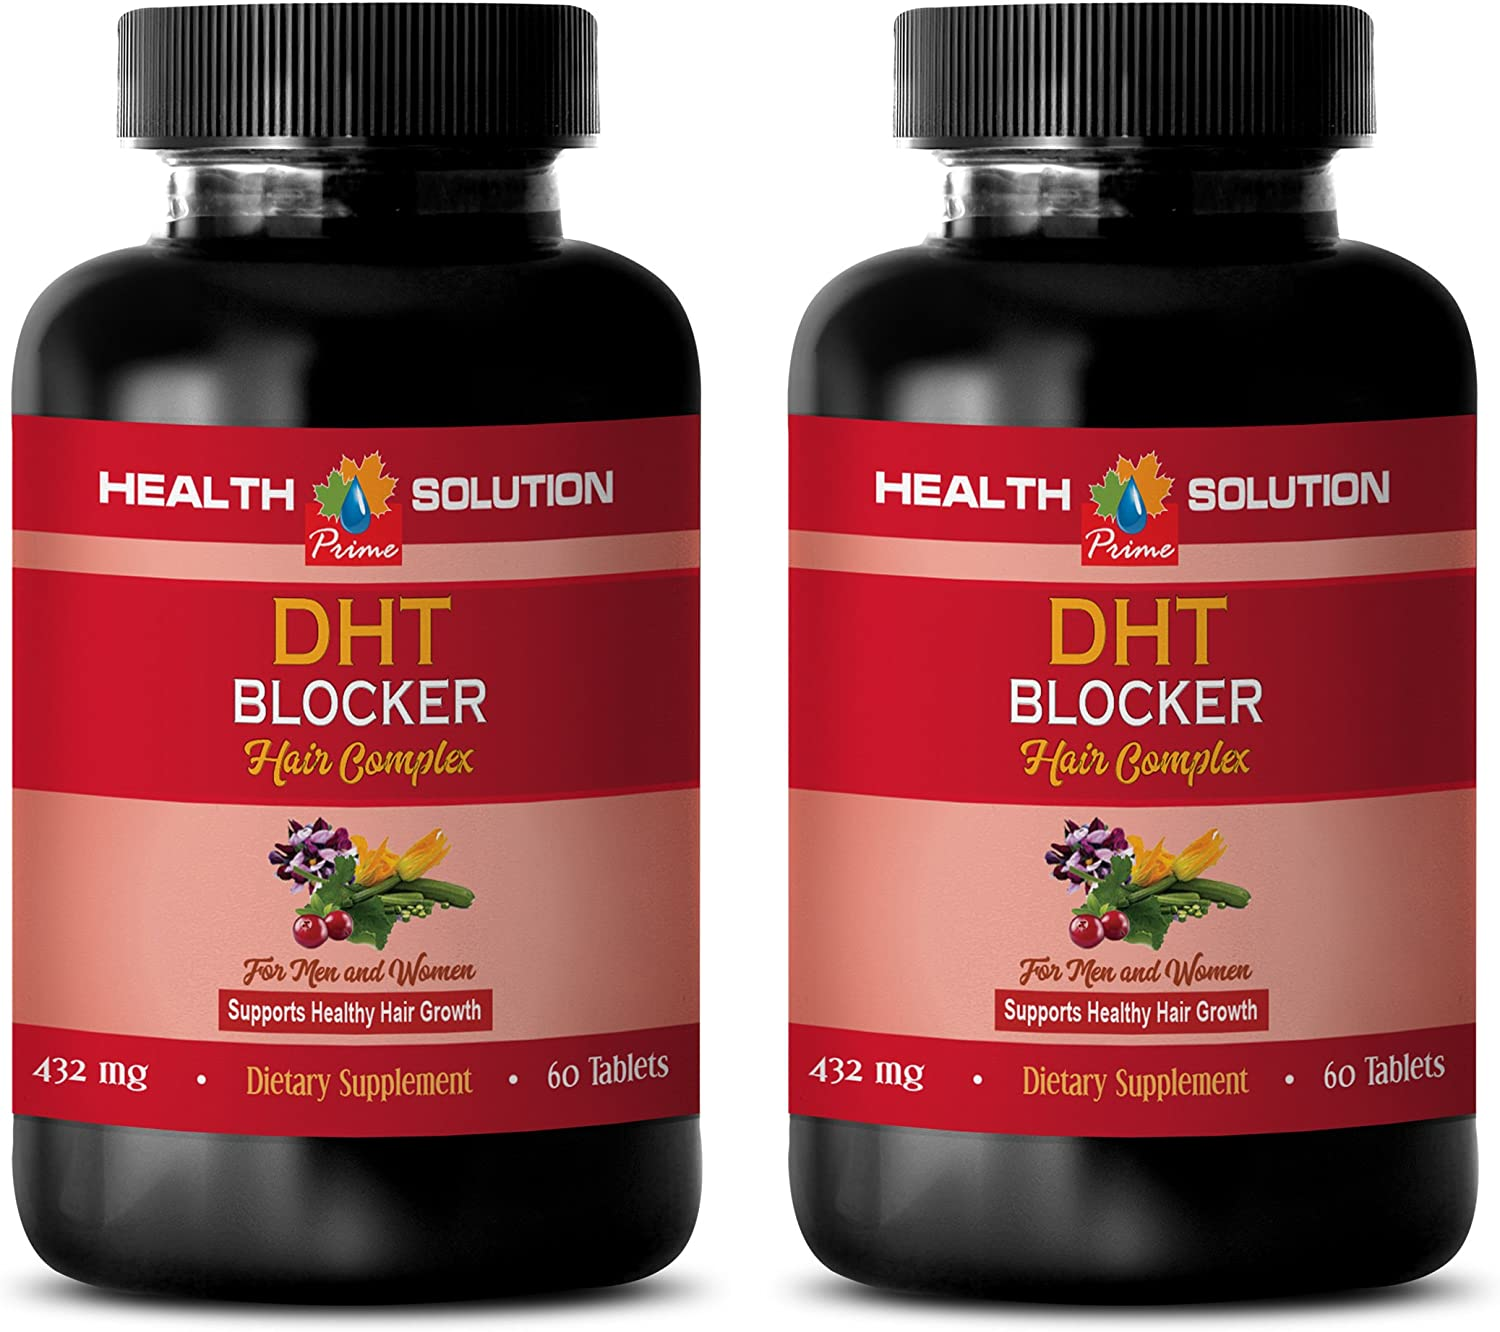 Hair Loss Blocker Supplements Free shipping on posting reviews - New life Complex for DHT M